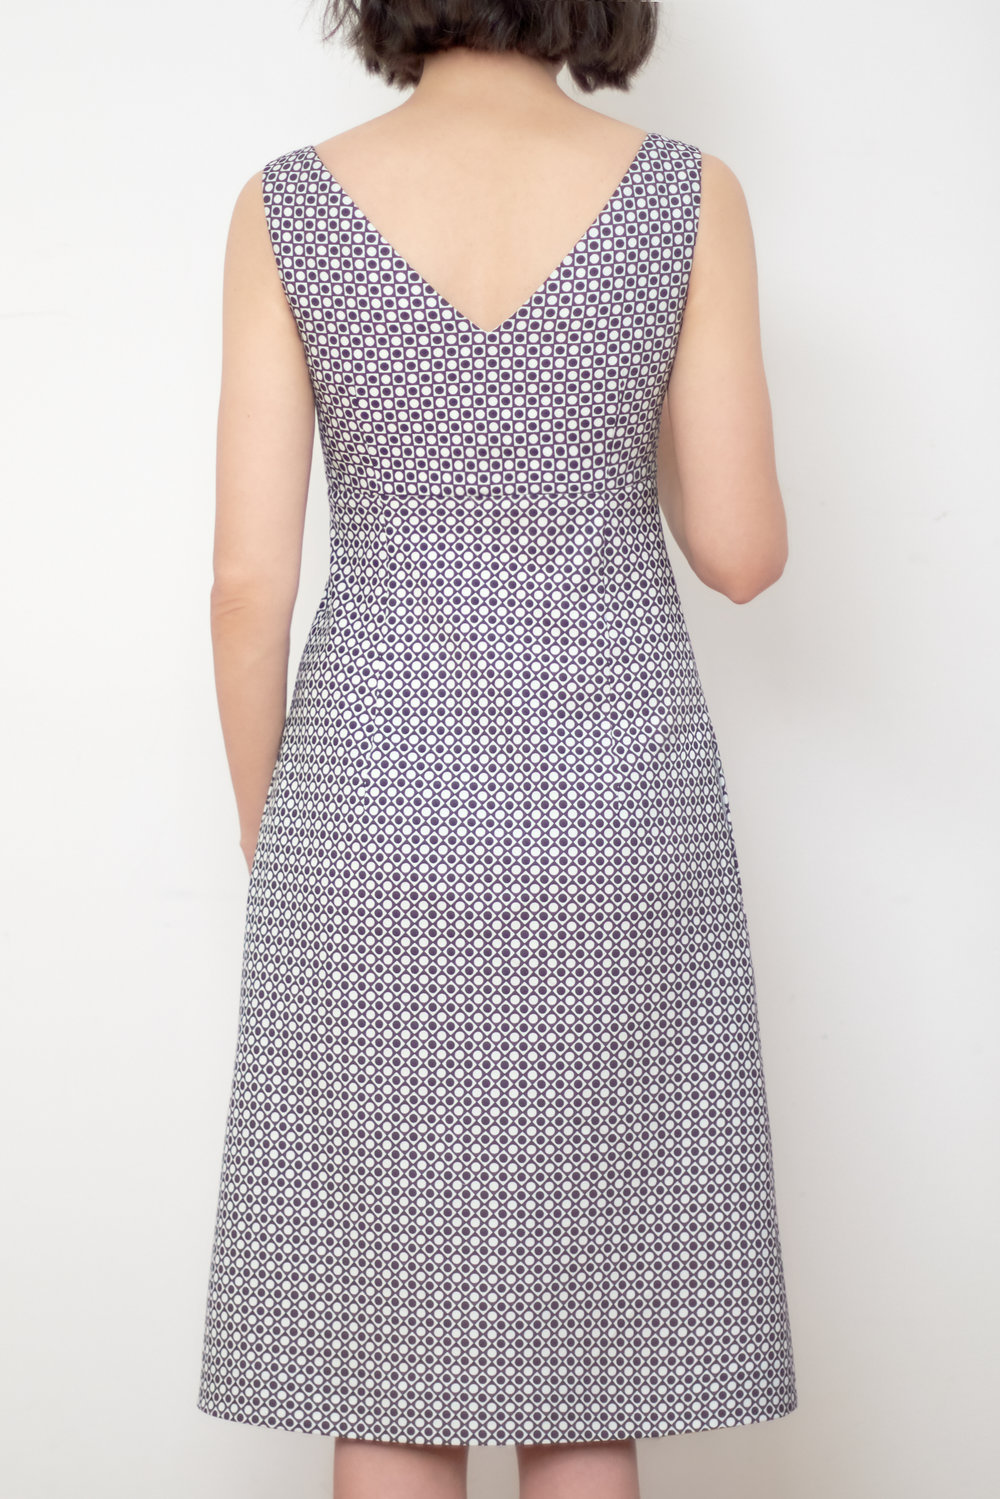 Burda v-neck dress 109A 06/2014